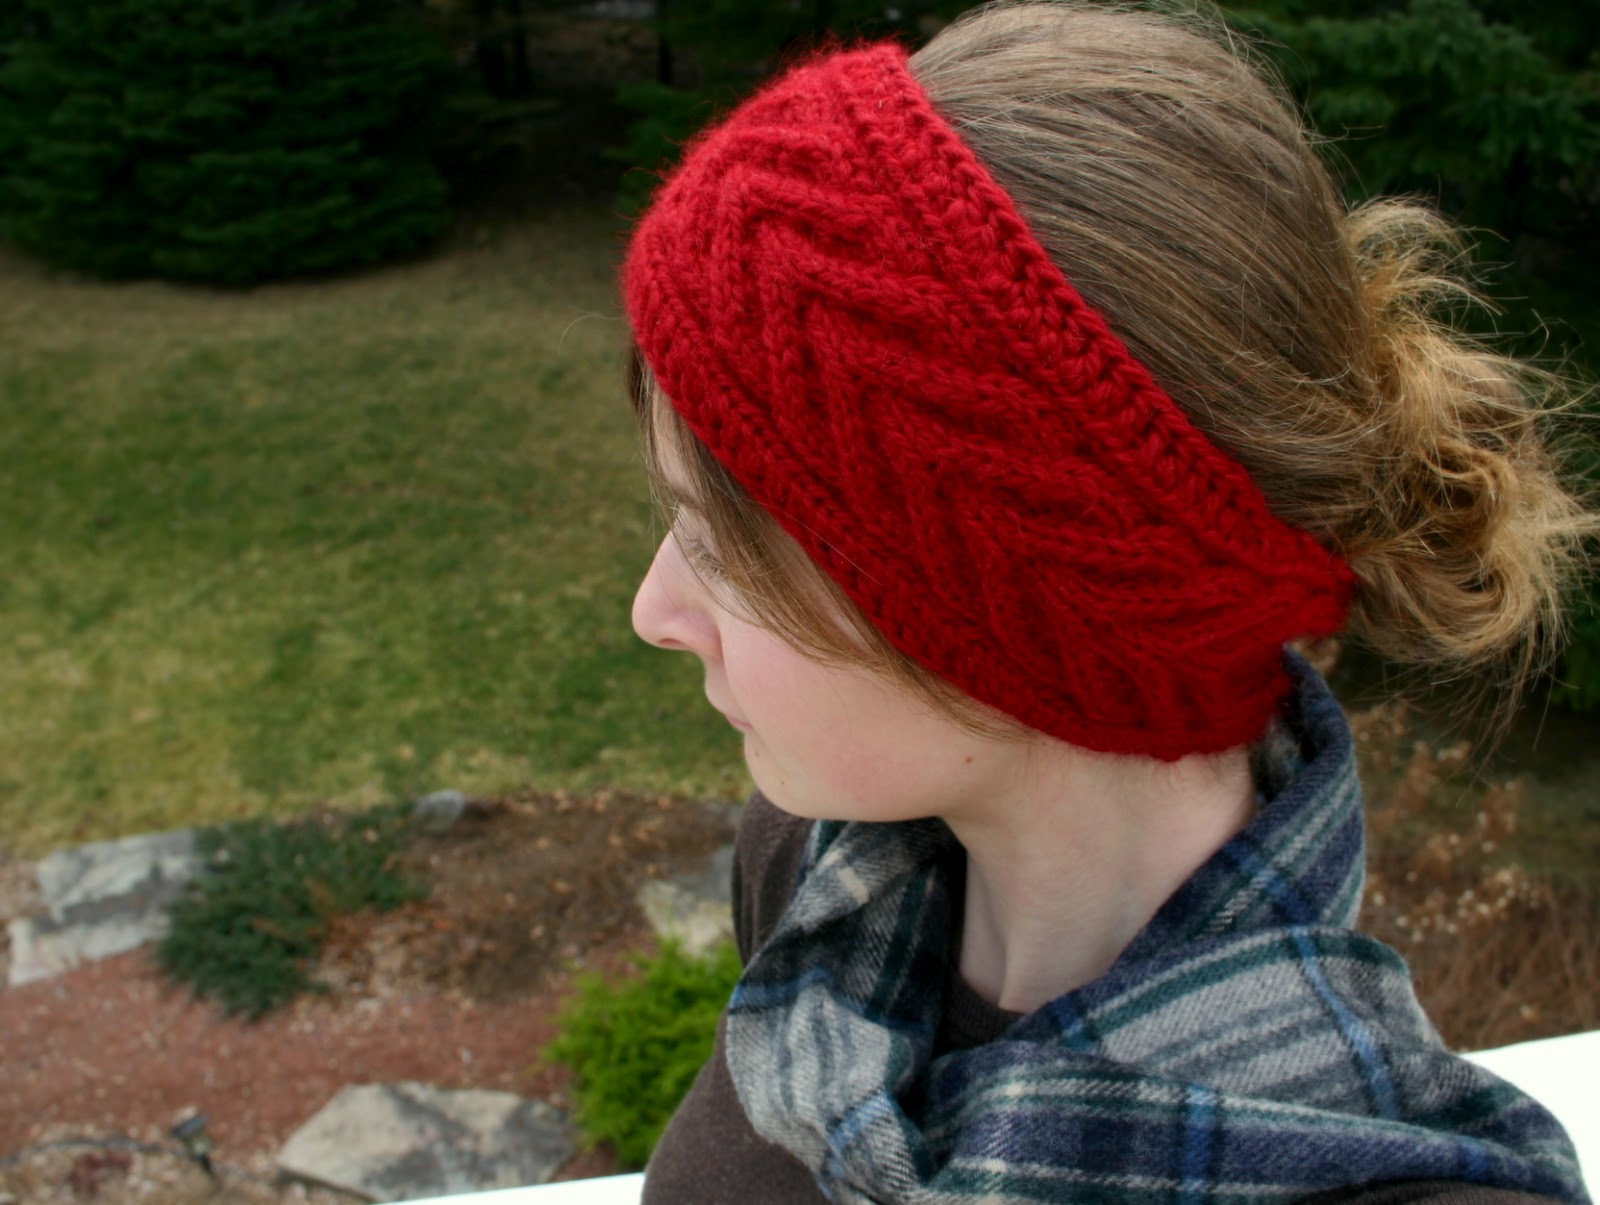 Alpaca Headband Knitting Pattern : The Fuzzy Square: Horseshoe Cable Headband Knitting and Crochet Pattern